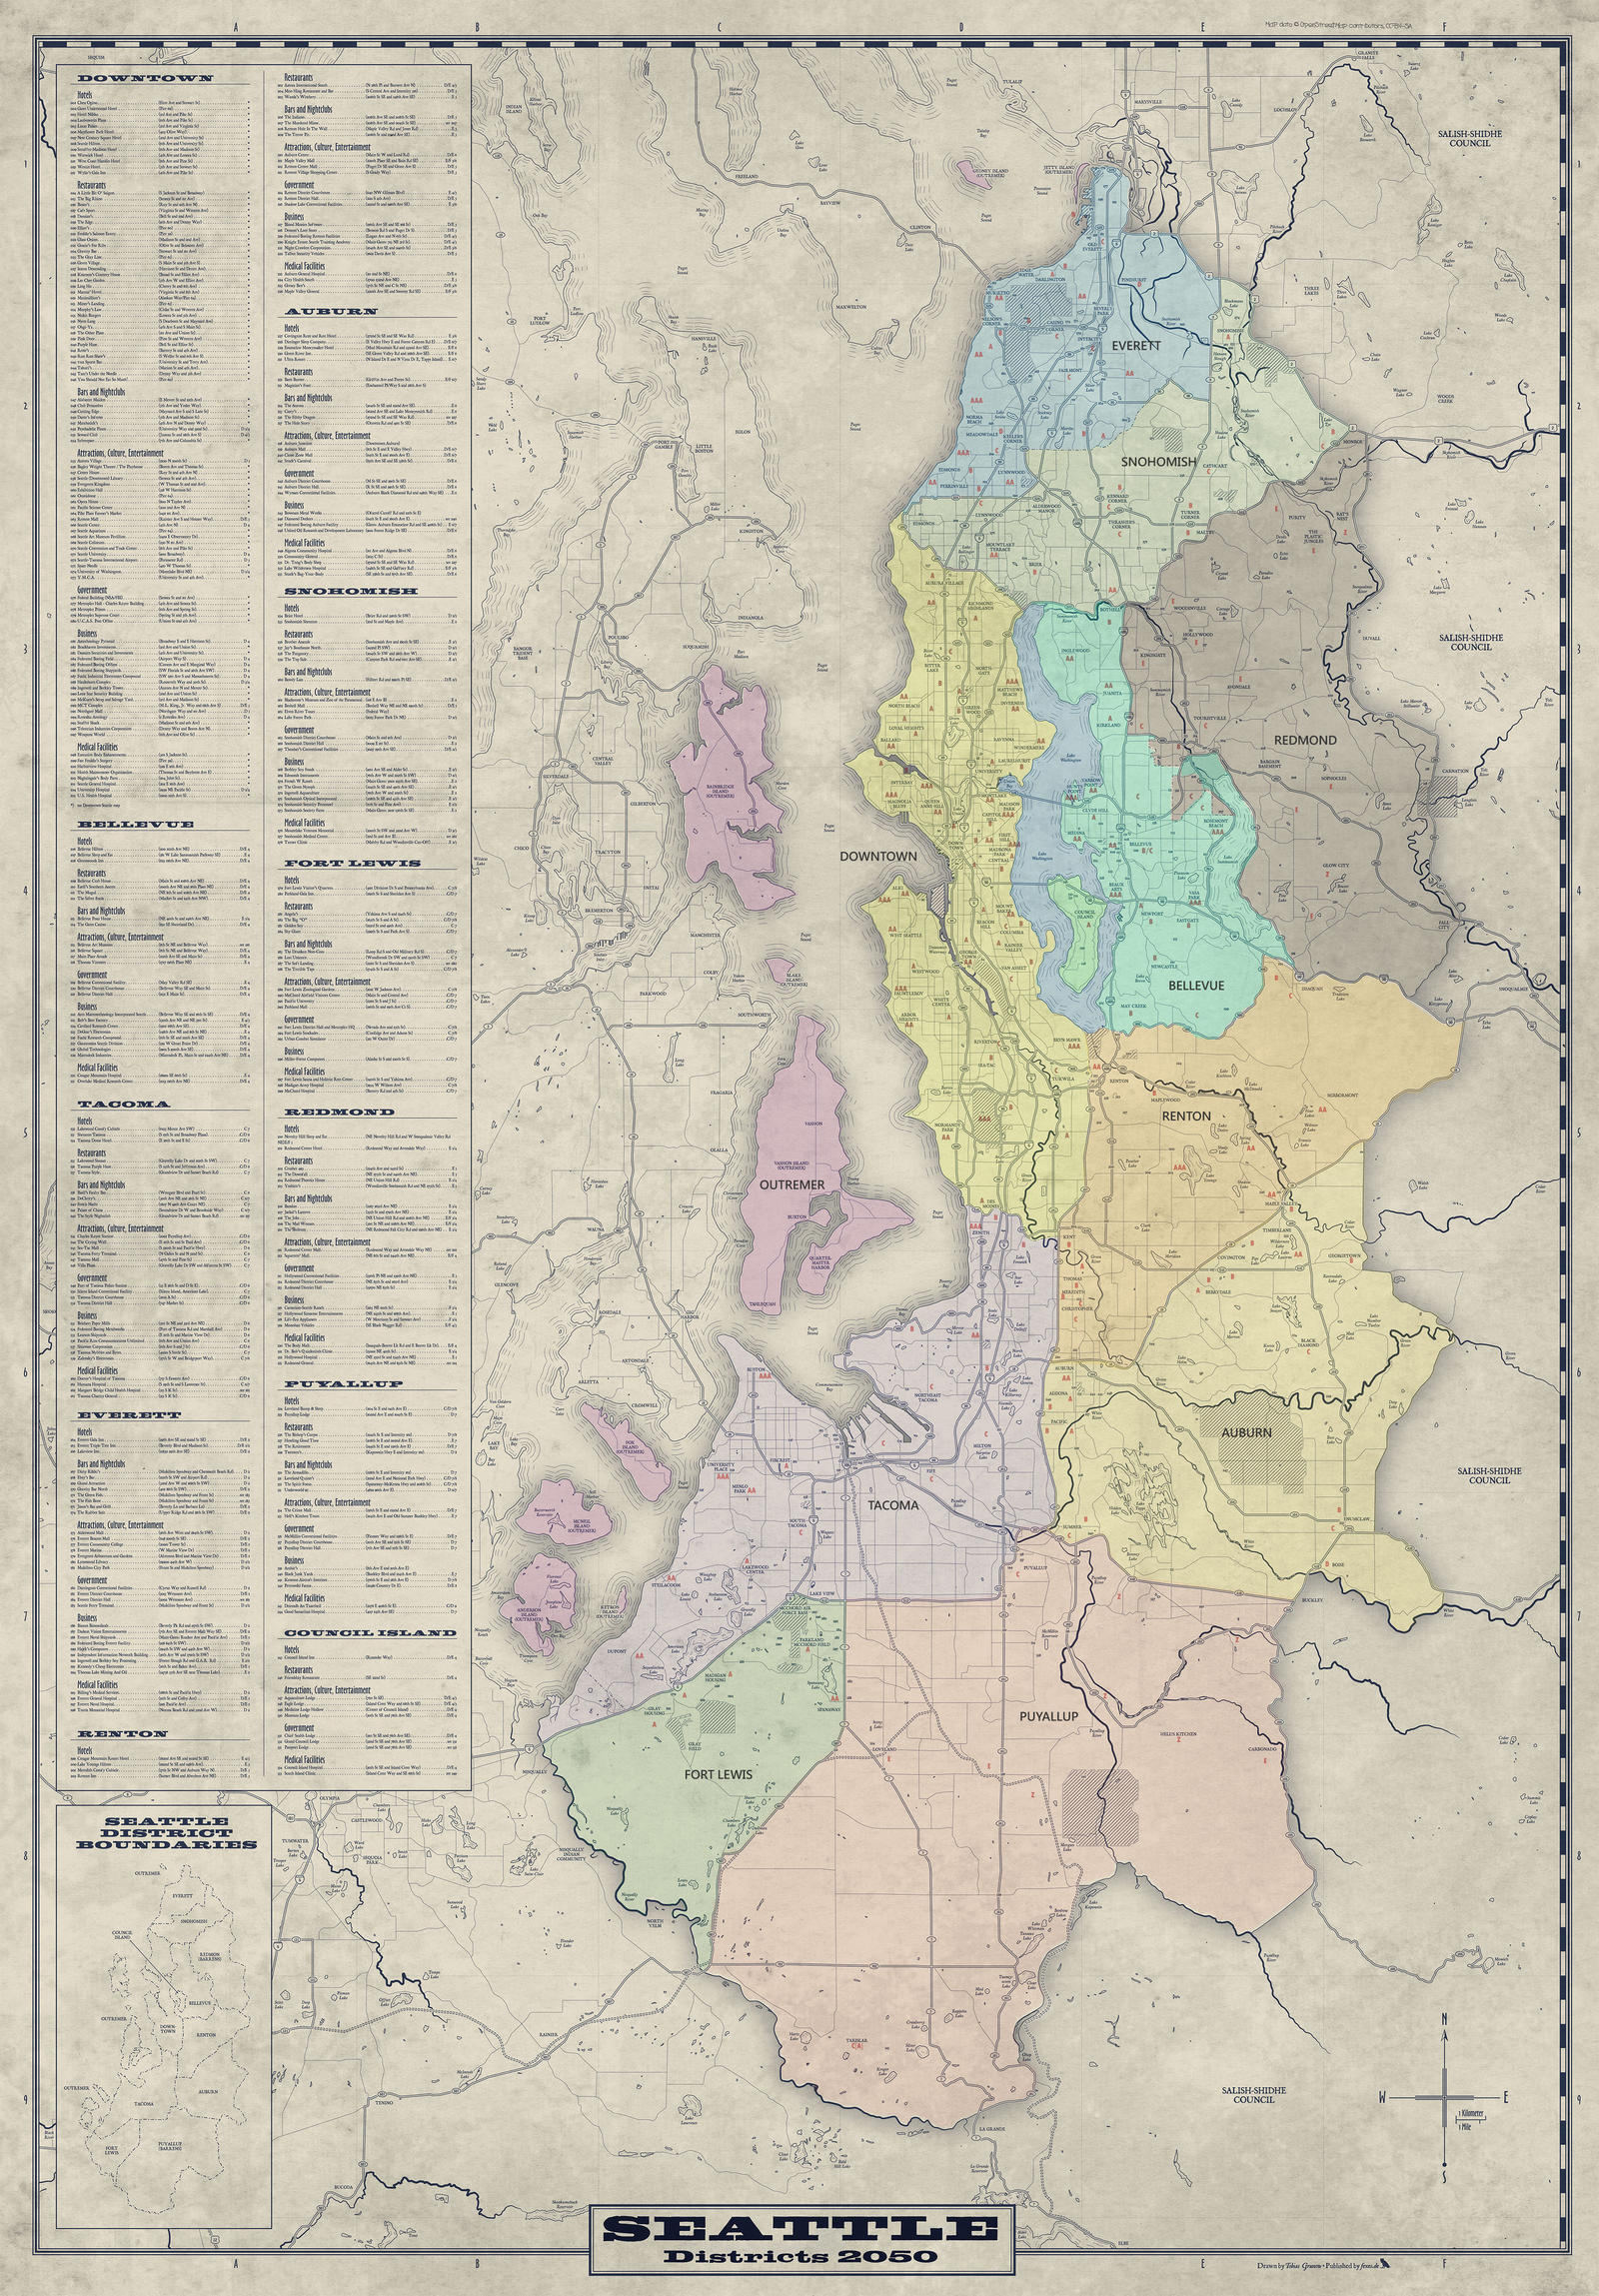 SR2050 Seattle Districts Zones by MNNoxMortem on DeviantArt